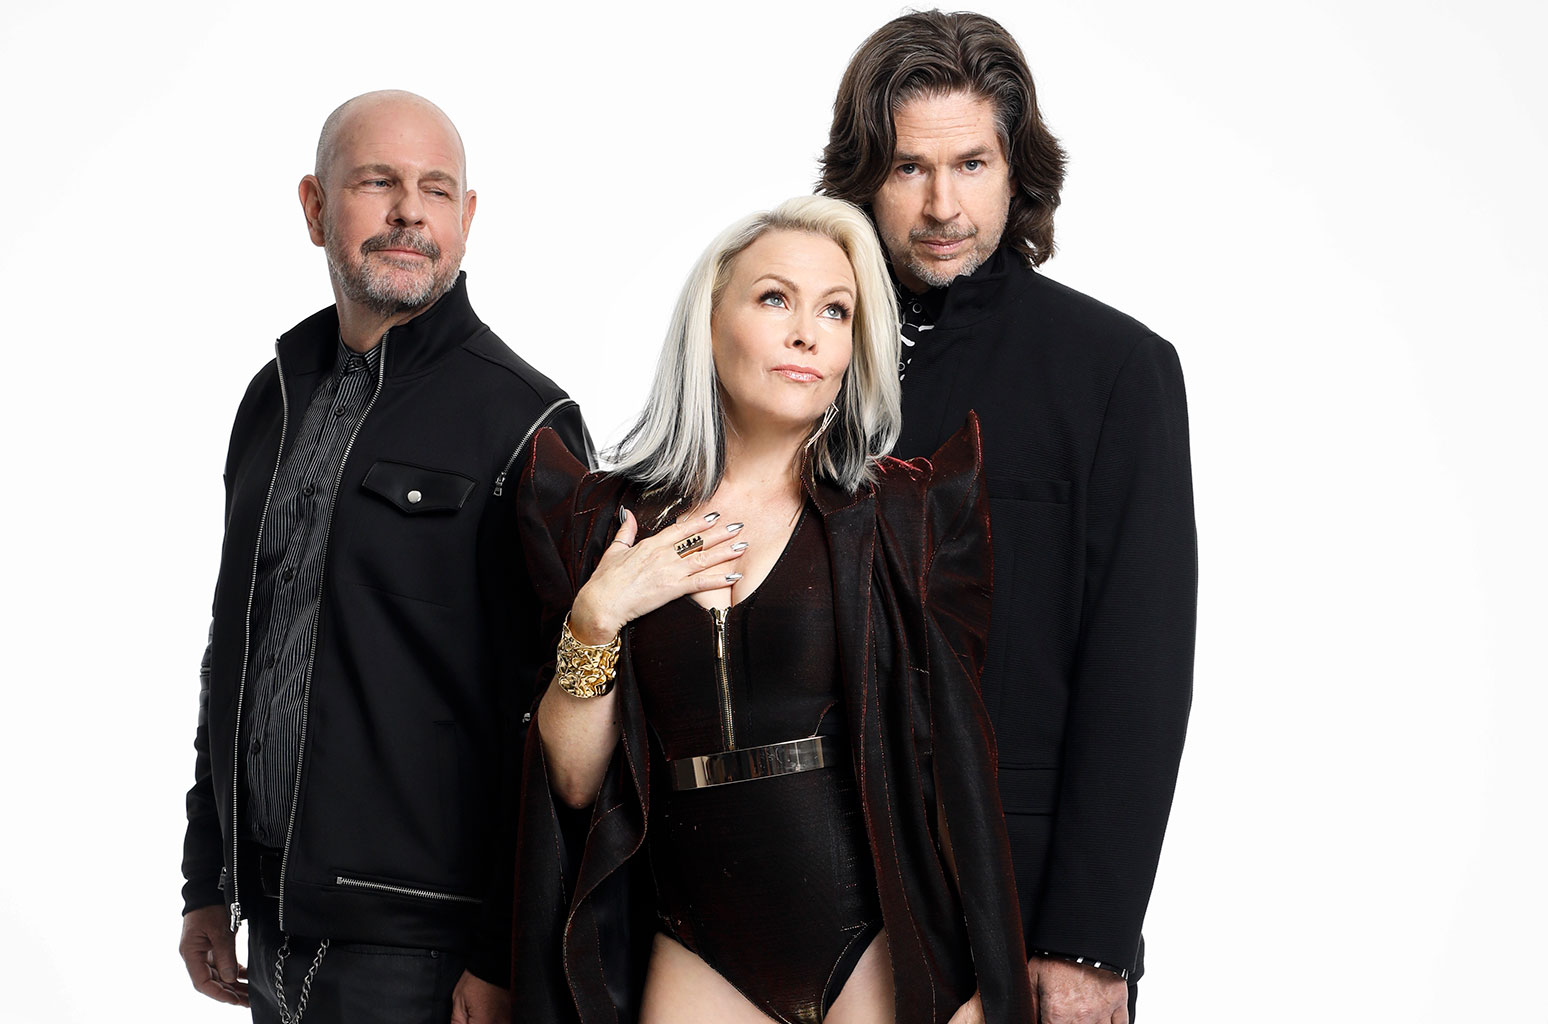 Berlin's Terri Nunn Talks Reuniting With Co-Founders for New Album & Sex In Your Fifties